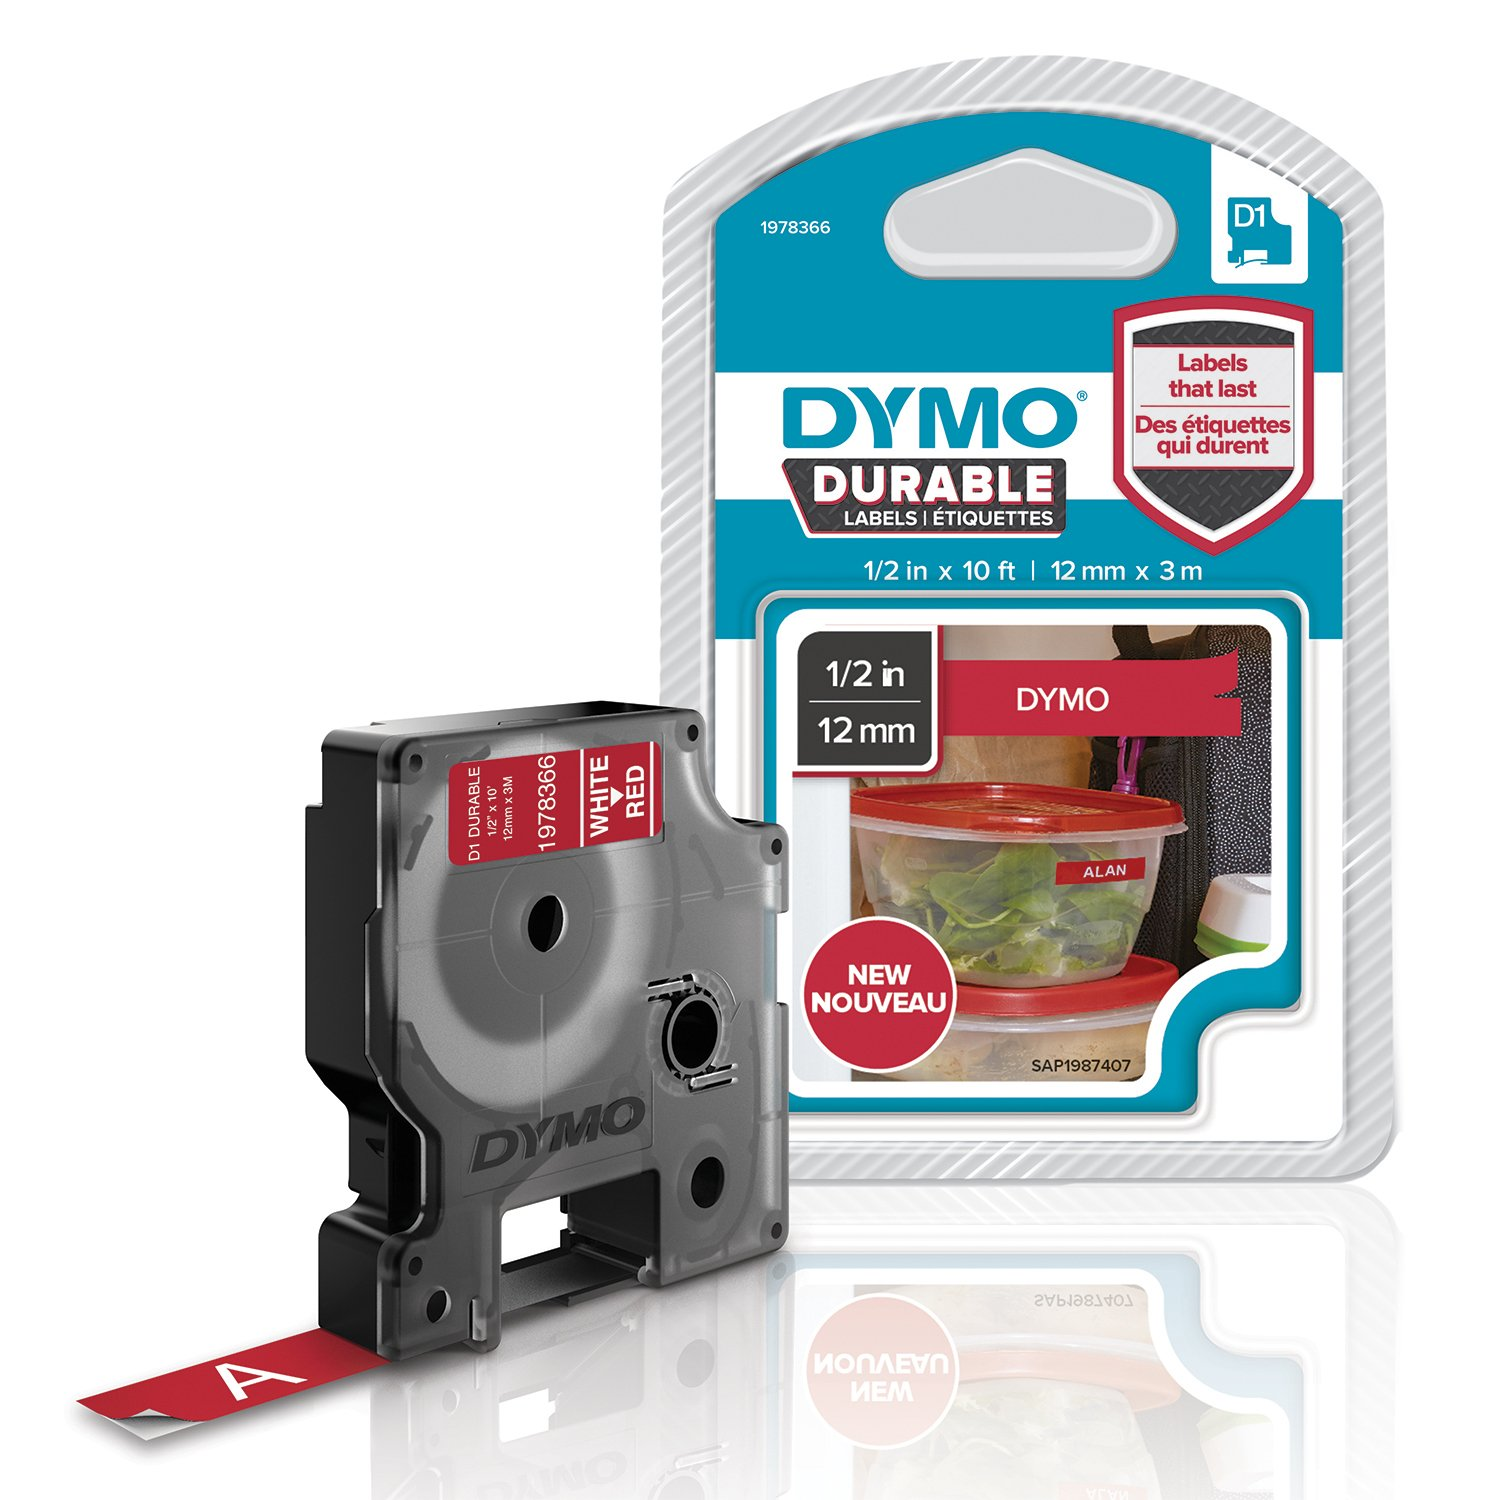 DYMO D1 Durable Labeling Tape for LabelManager Label Makers, White Print on Red Tape, 1/2'' W x 10' L, 1 Cartridge (1978366)